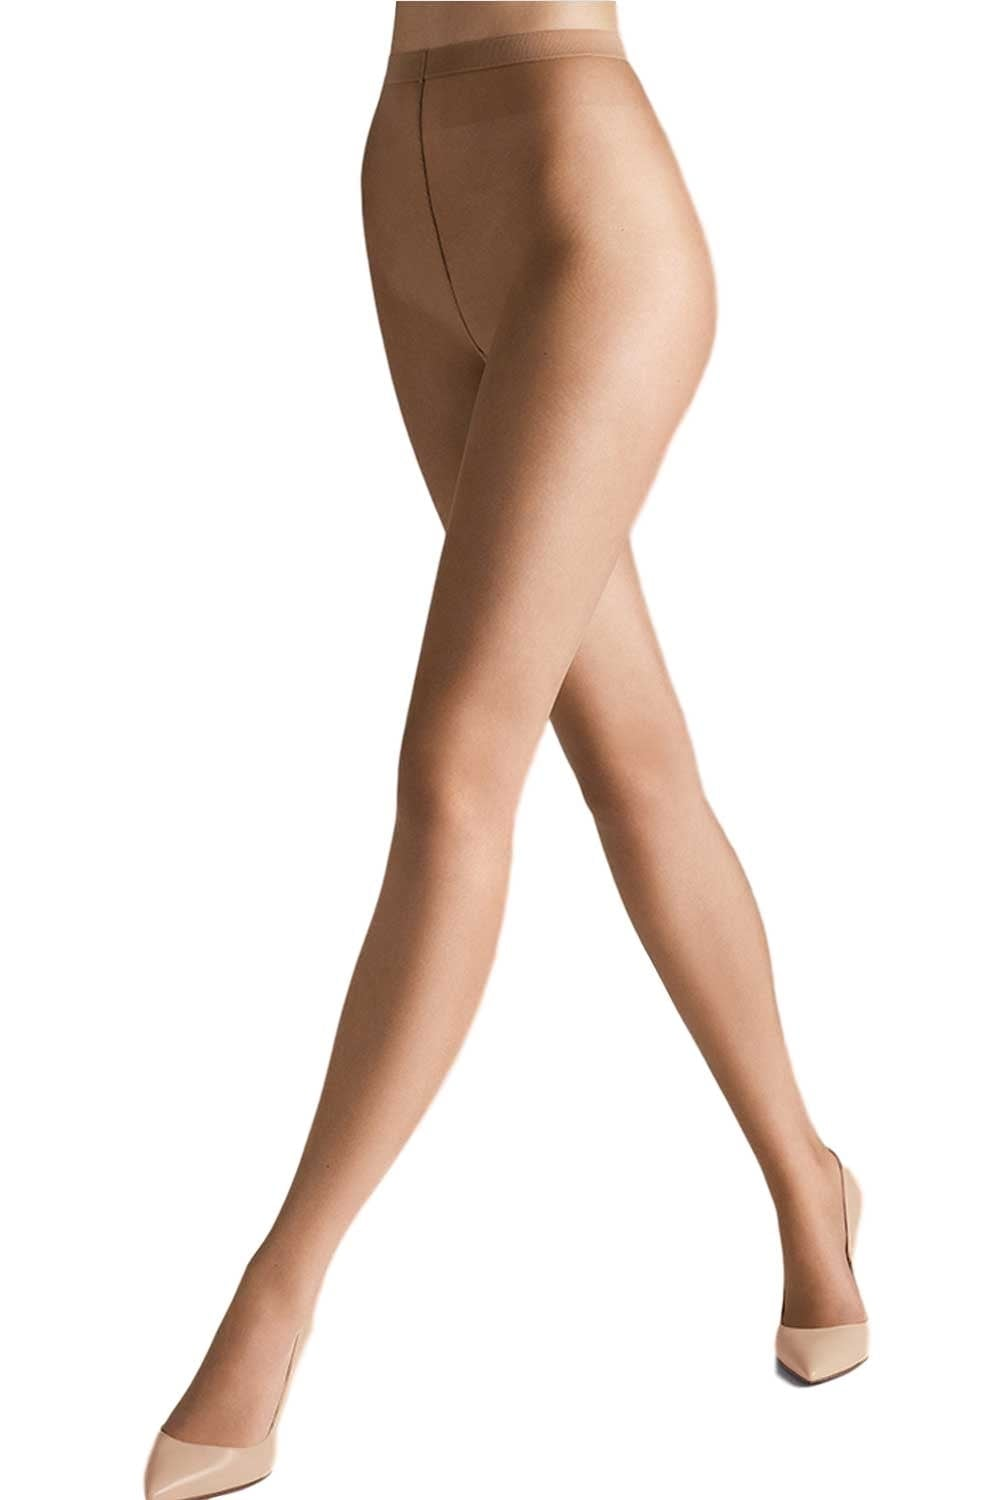 357e3b08339bf1 Wolford at Tights Tights Tights